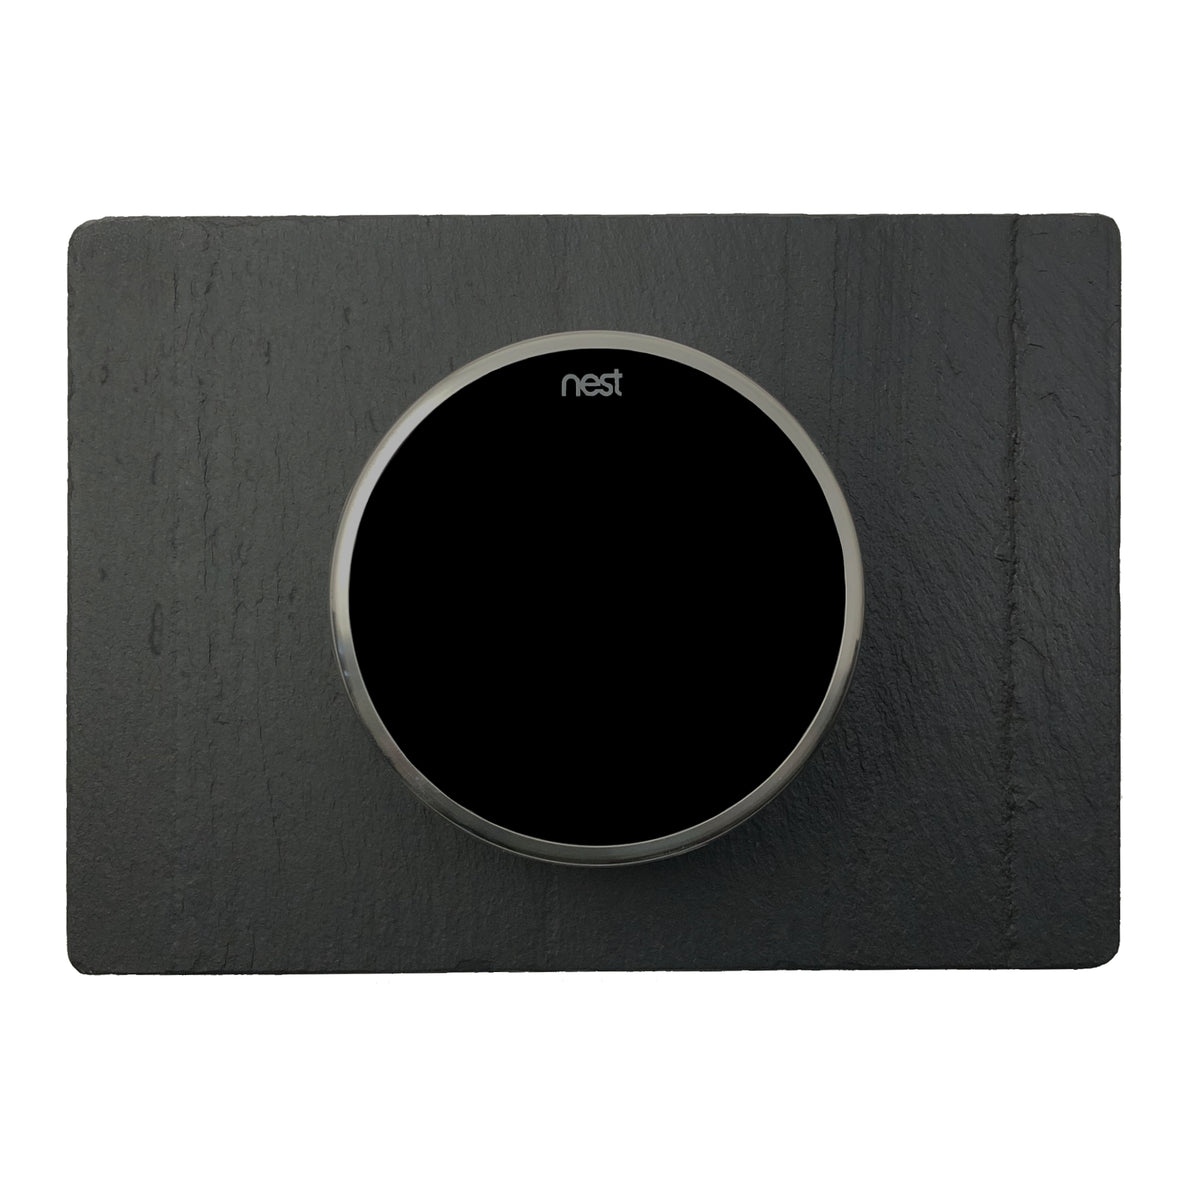 Nest Wall Plate 7 x 5 Inches Black Slate Stone